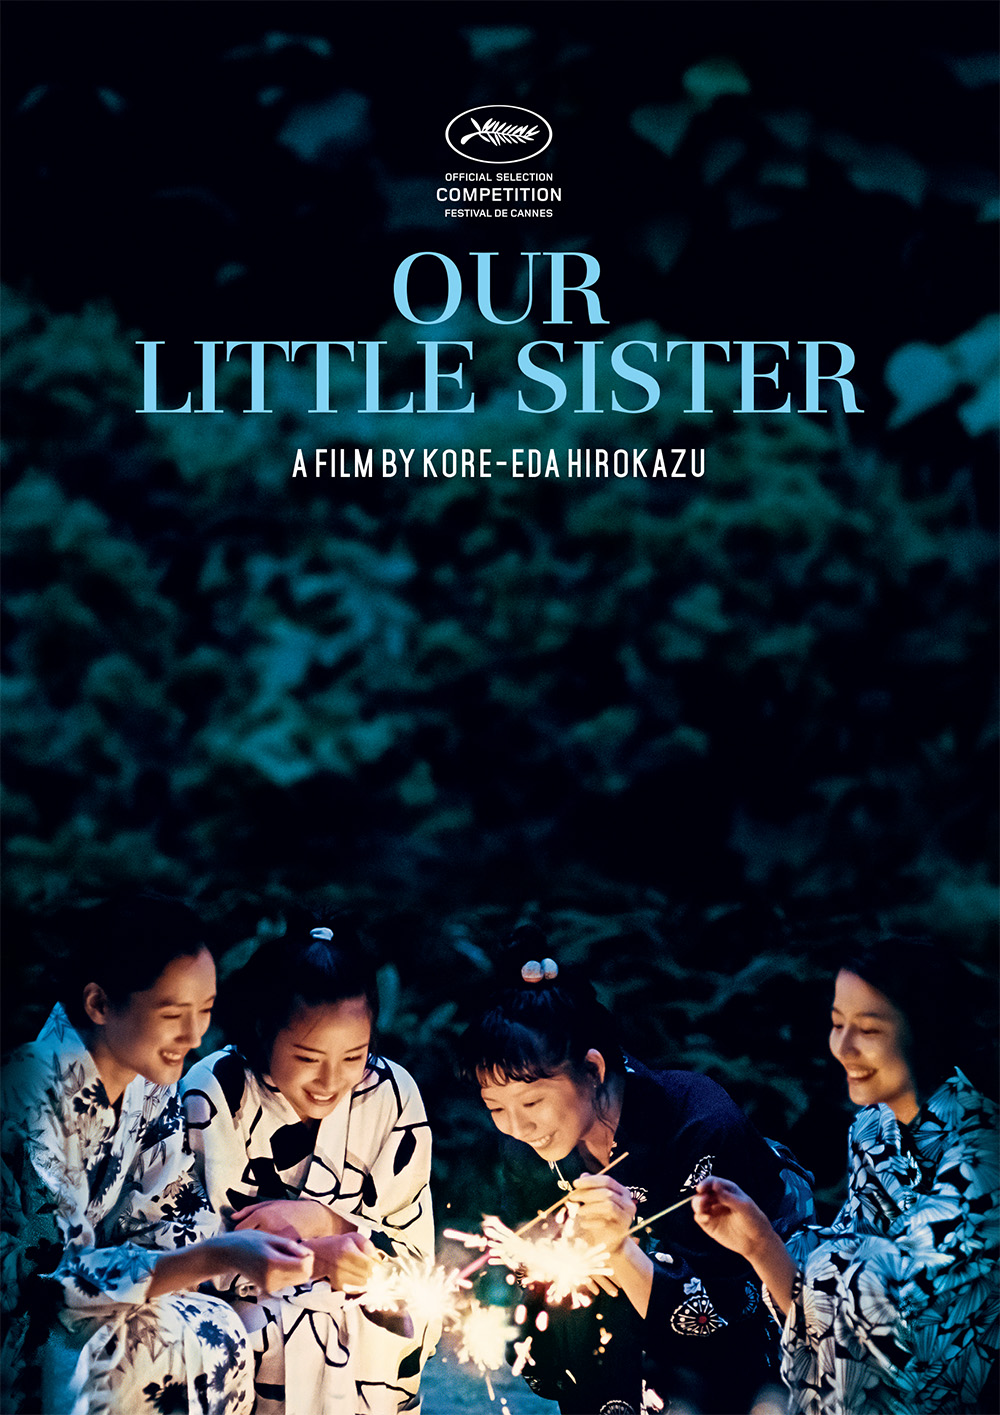 Our-Little-Sister-Poster - Koreeda 2015 Umimachi Diary